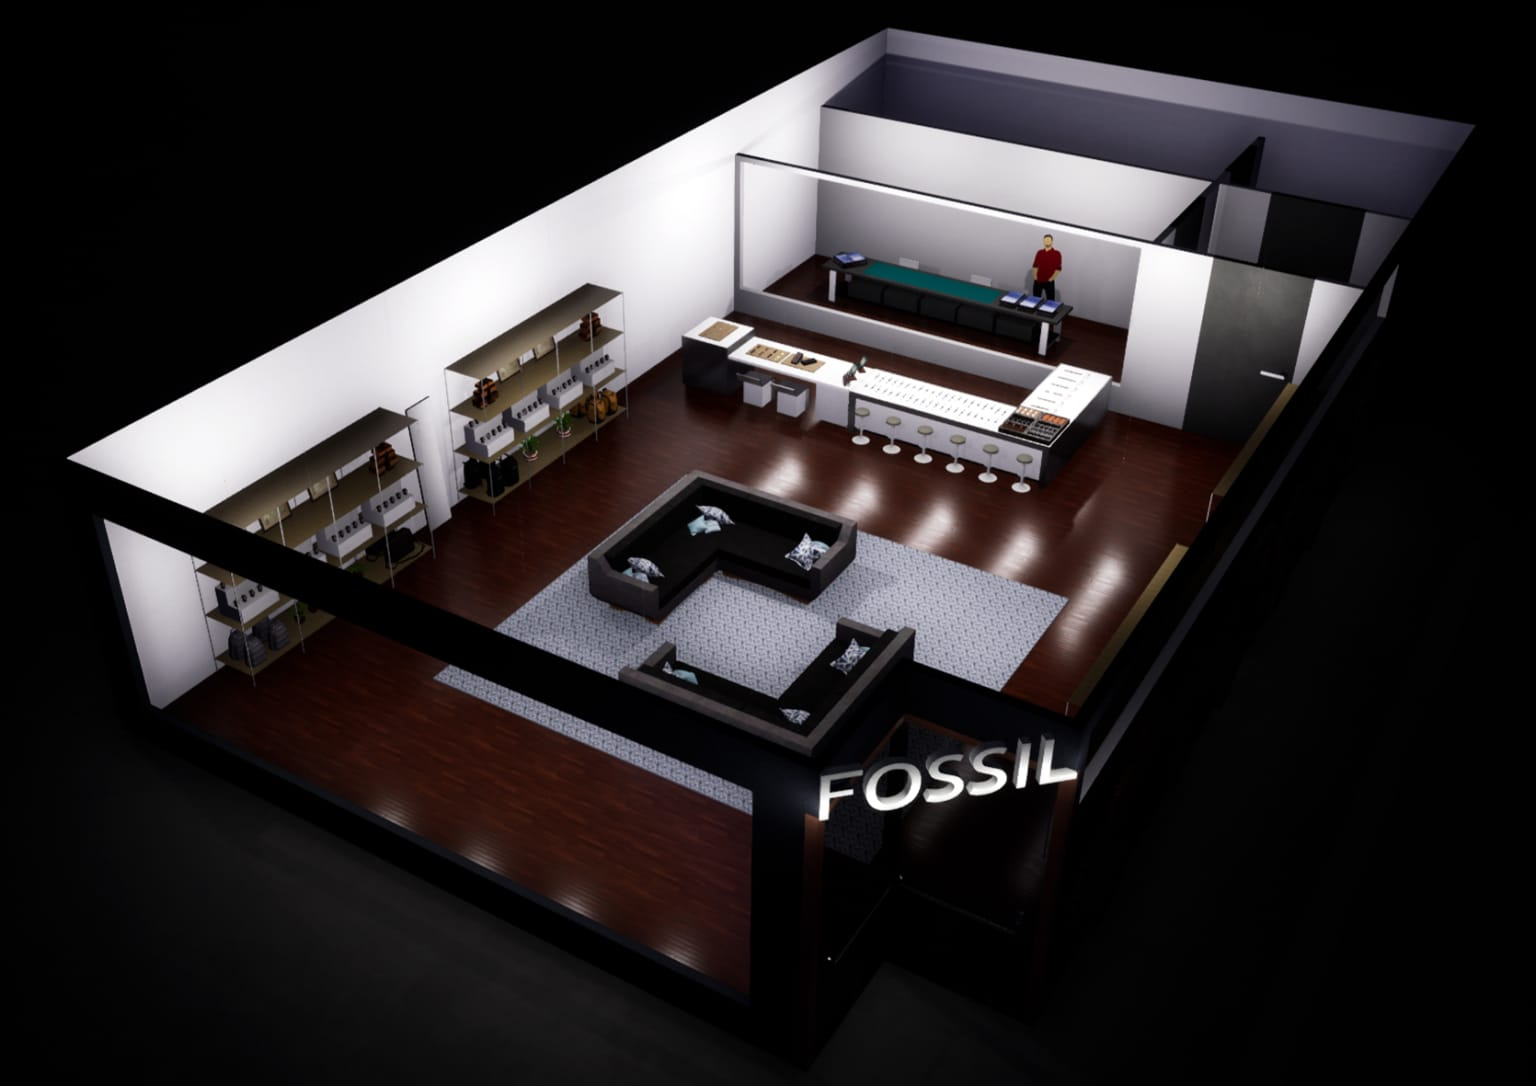 FOSSIL Store Redesign